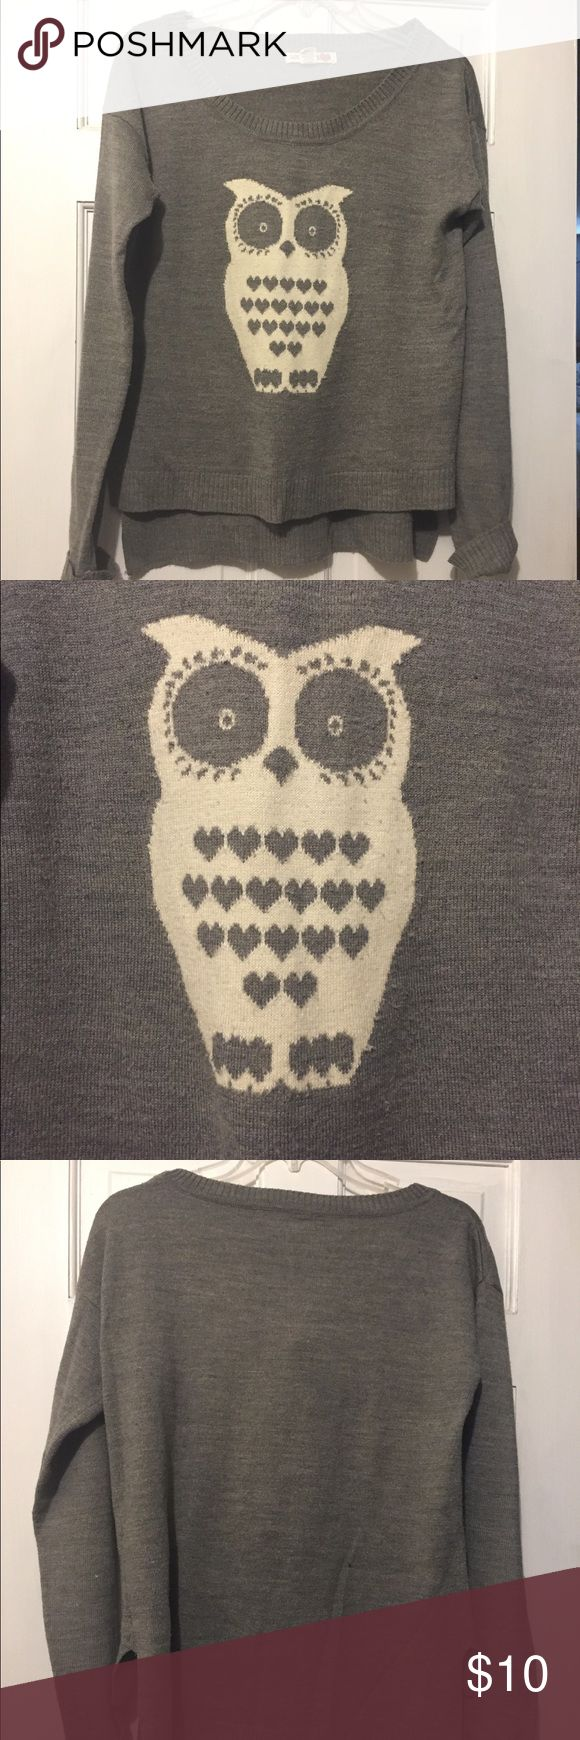 Adorable owl sweater Adorable owl sweater-comfy! Has some pilling but still looks great! Love by Design Sweaters